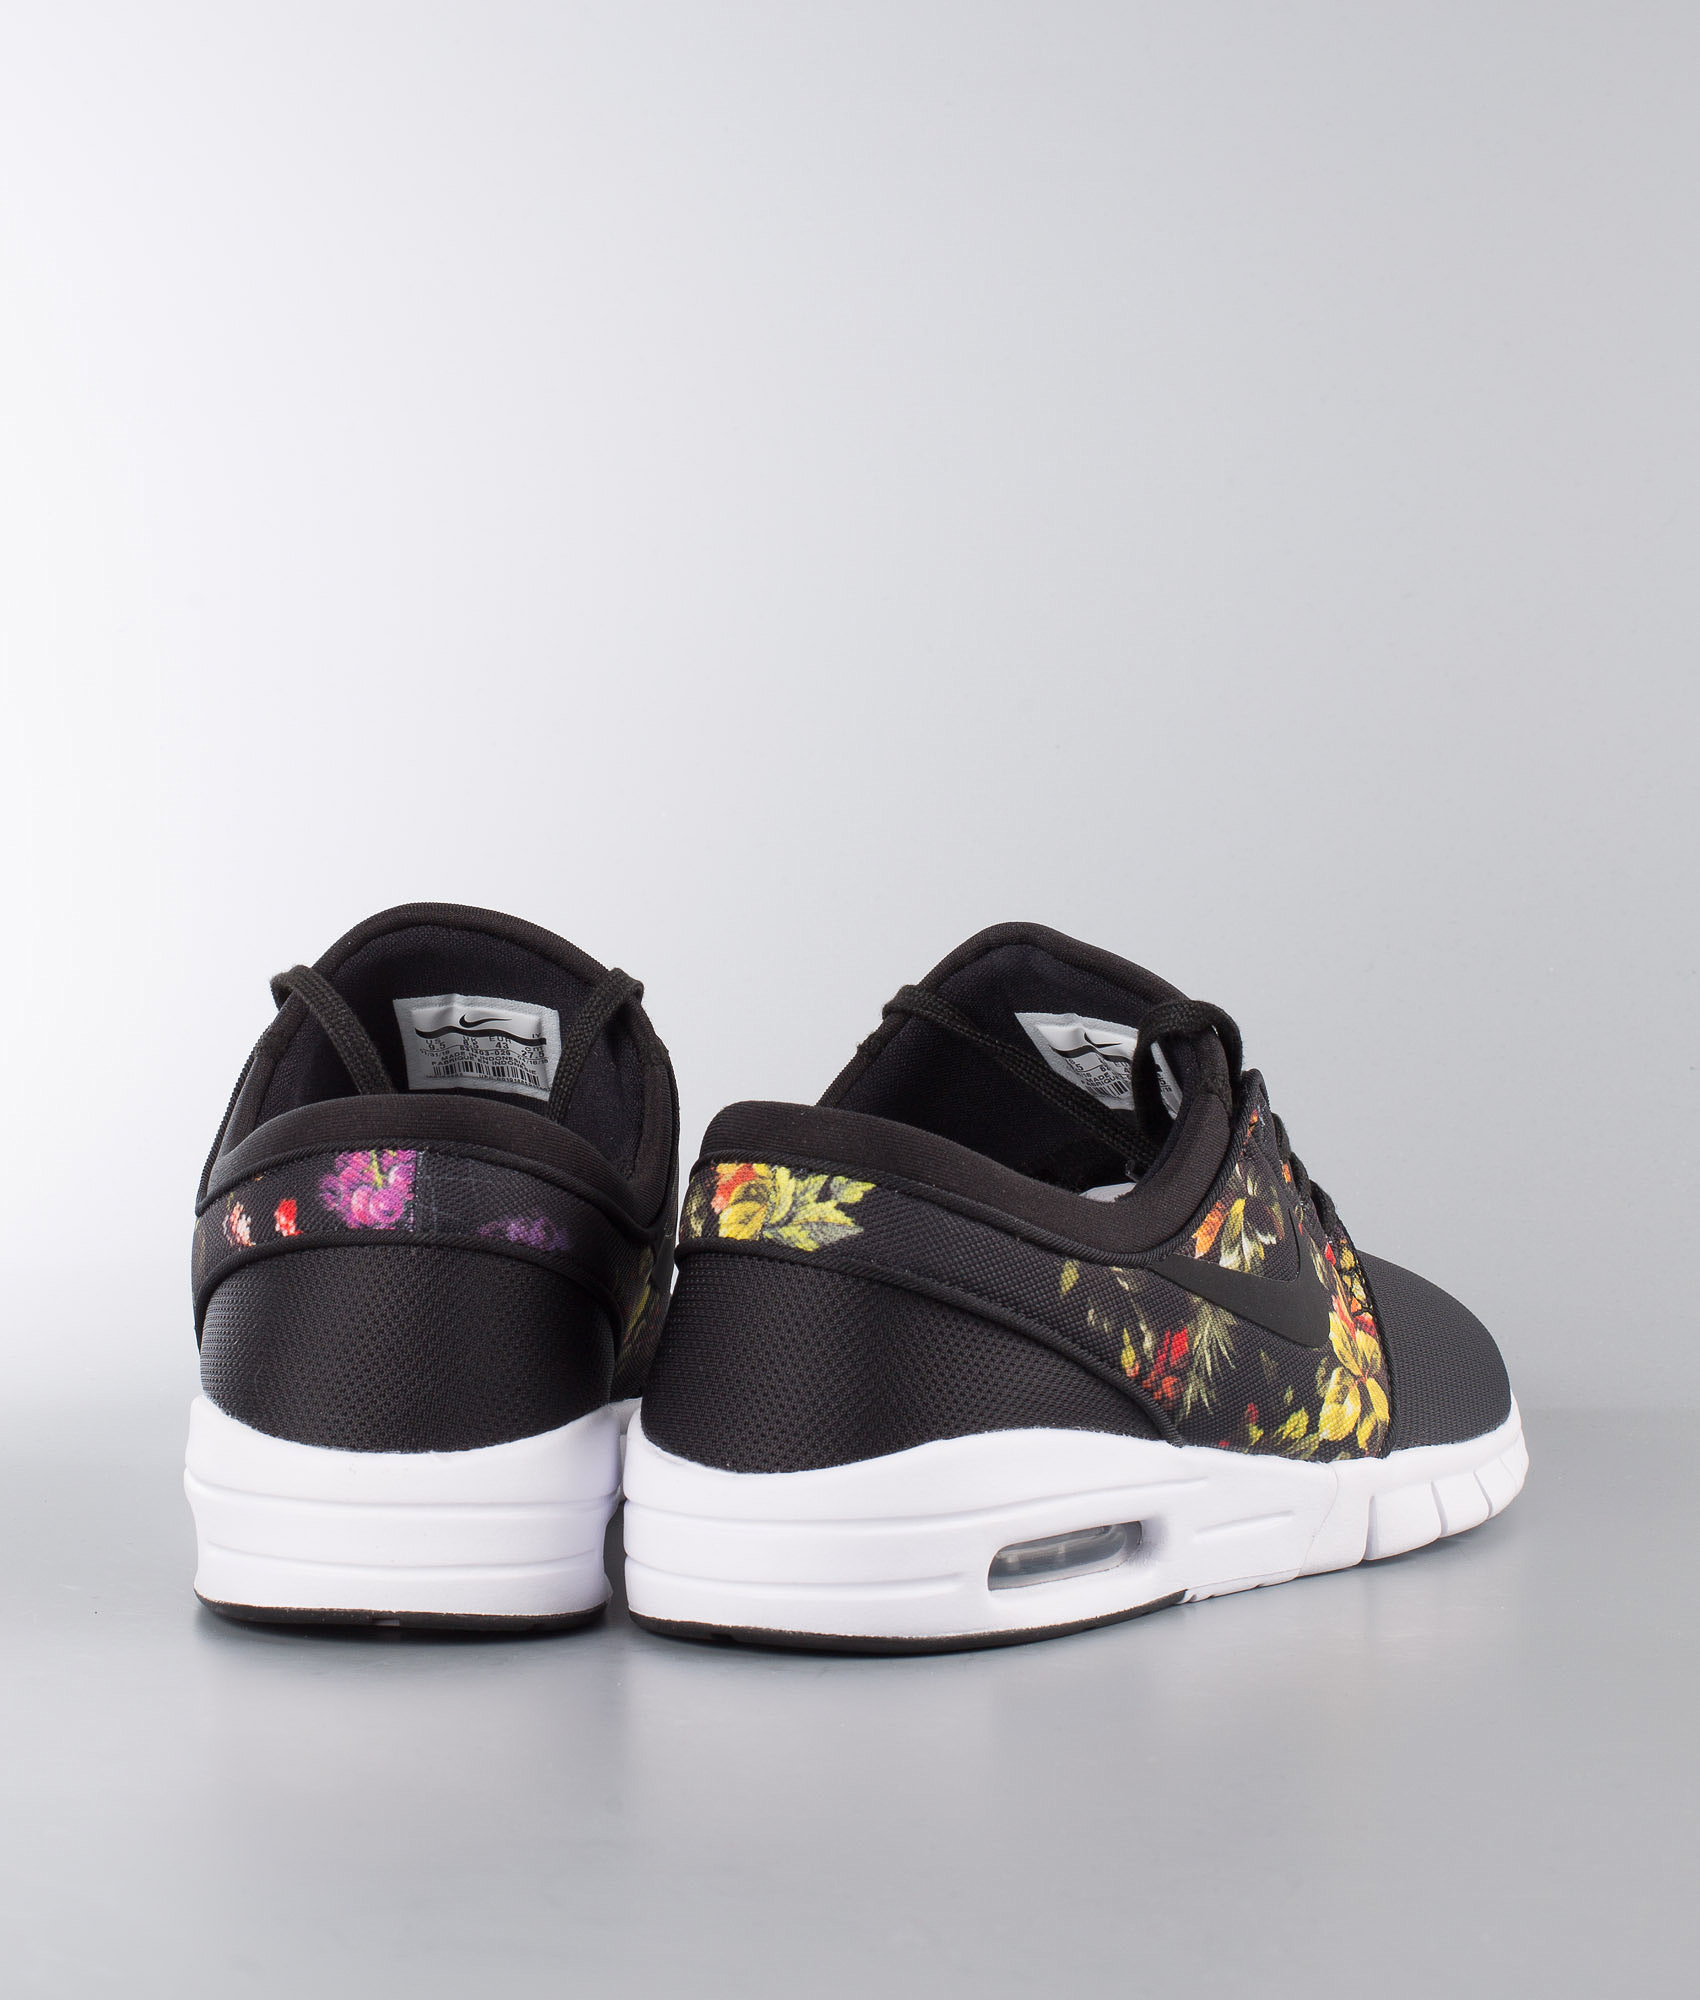 338bd82183211 Nike Stefan Janoski Max Shoes Black Black-Multi-Color - Ridestore.com